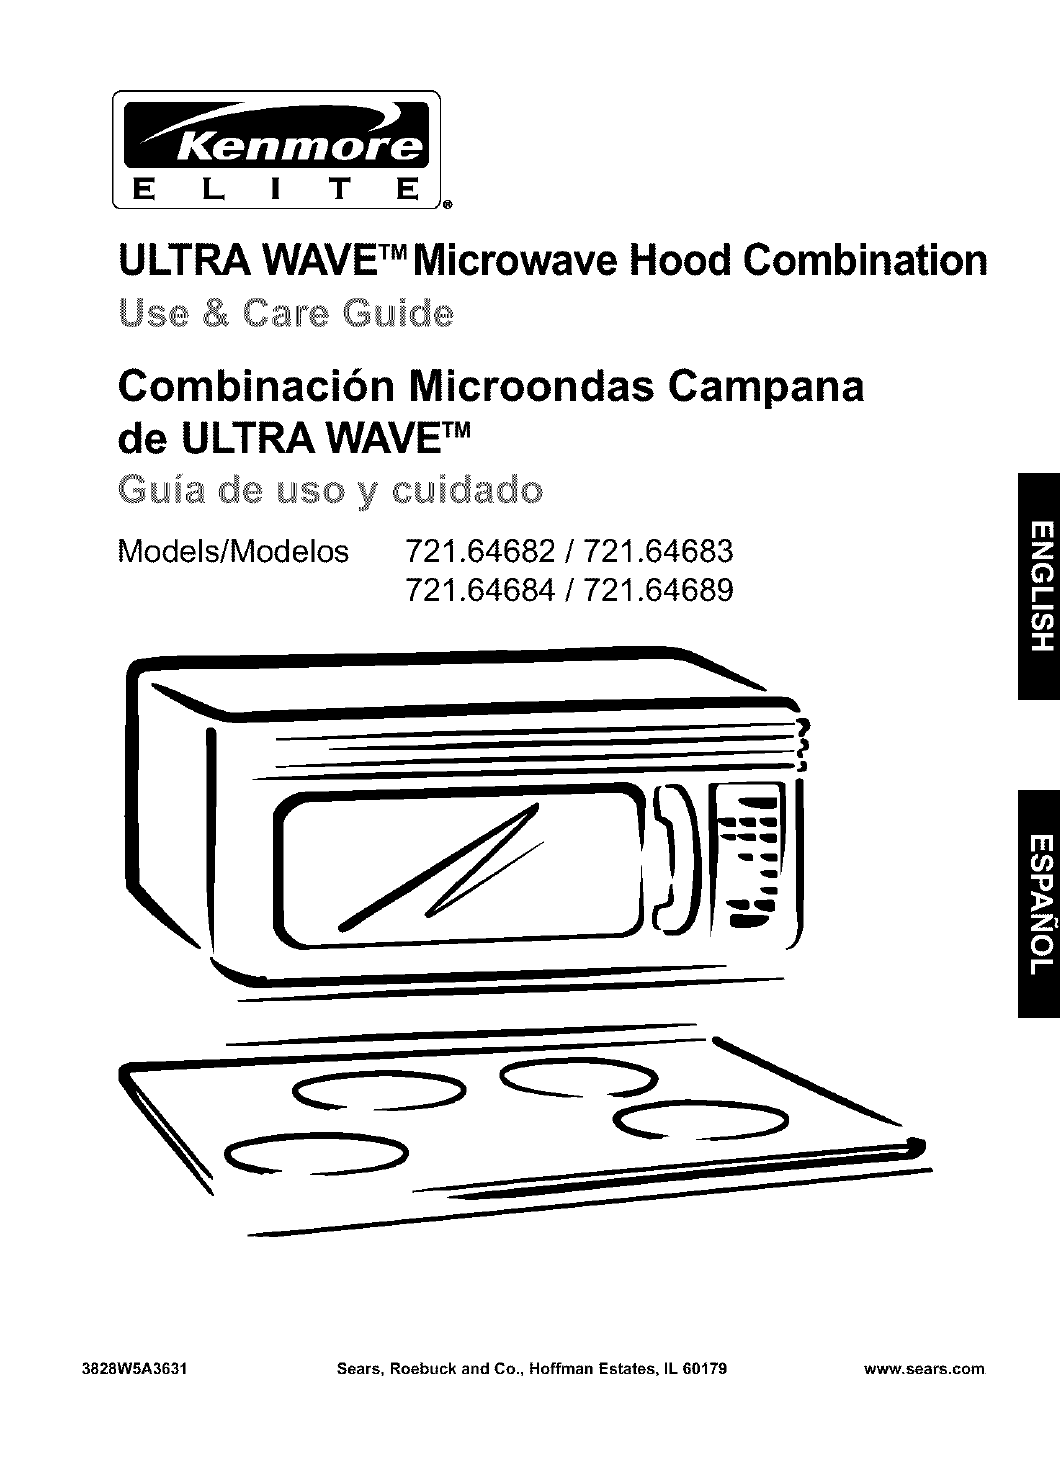 kenmore microwave oven 721 64684 user guide manualsonline com